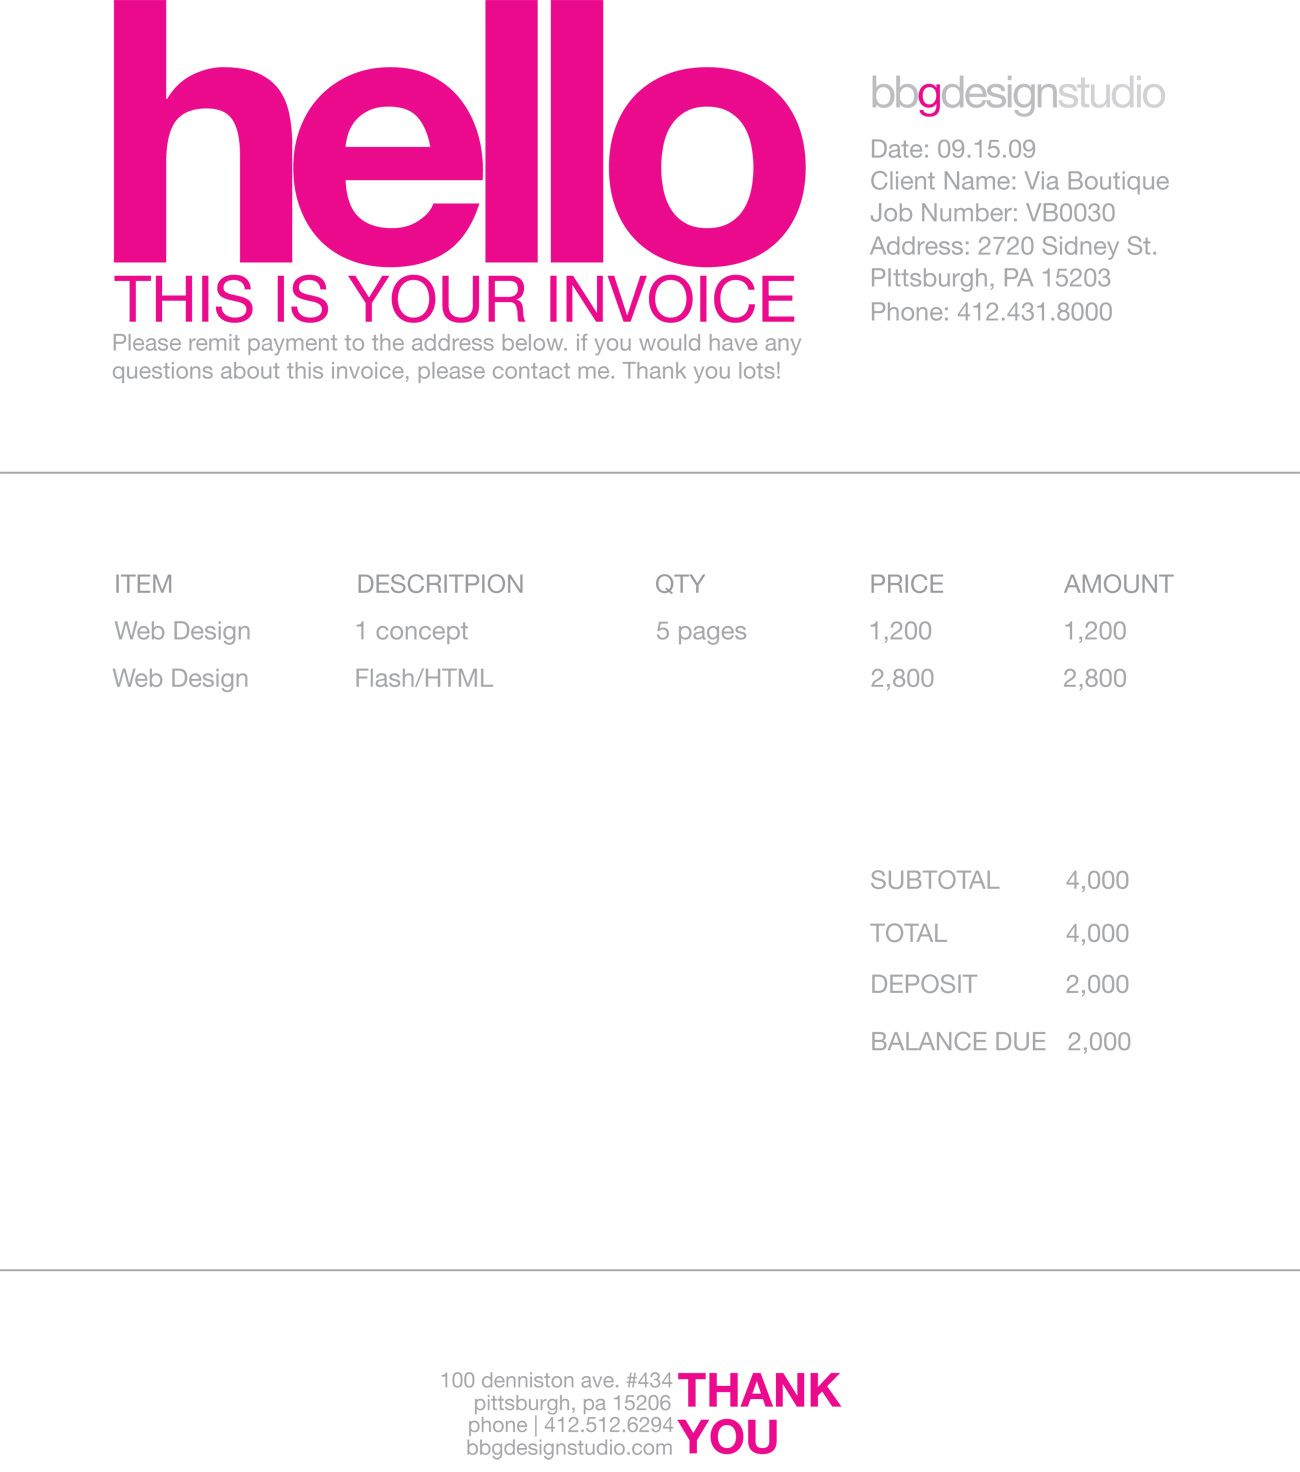 Aaaaeroincus  Ravishing  Images About Invoice Design On Pinterest With Exciting Receipt Template Rent Besides Pork Receipt Furthermore Petrol Receipt Format With Easy On The Eye Party City Store Return Policy No Receipt Also Cash Receipt Journal In Addition Sample Sales Receipt Template And Gross Receipts Or Sales As Well As Receipt Data Additionally Sears E Receipt From Pinterestcom With Aaaaeroincus  Exciting  Images About Invoice Design On Pinterest With Easy On The Eye Receipt Template Rent Besides Pork Receipt Furthermore Petrol Receipt Format And Ravishing Party City Store Return Policy No Receipt Also Cash Receipt Journal In Addition Sample Sales Receipt Template From Pinterestcom